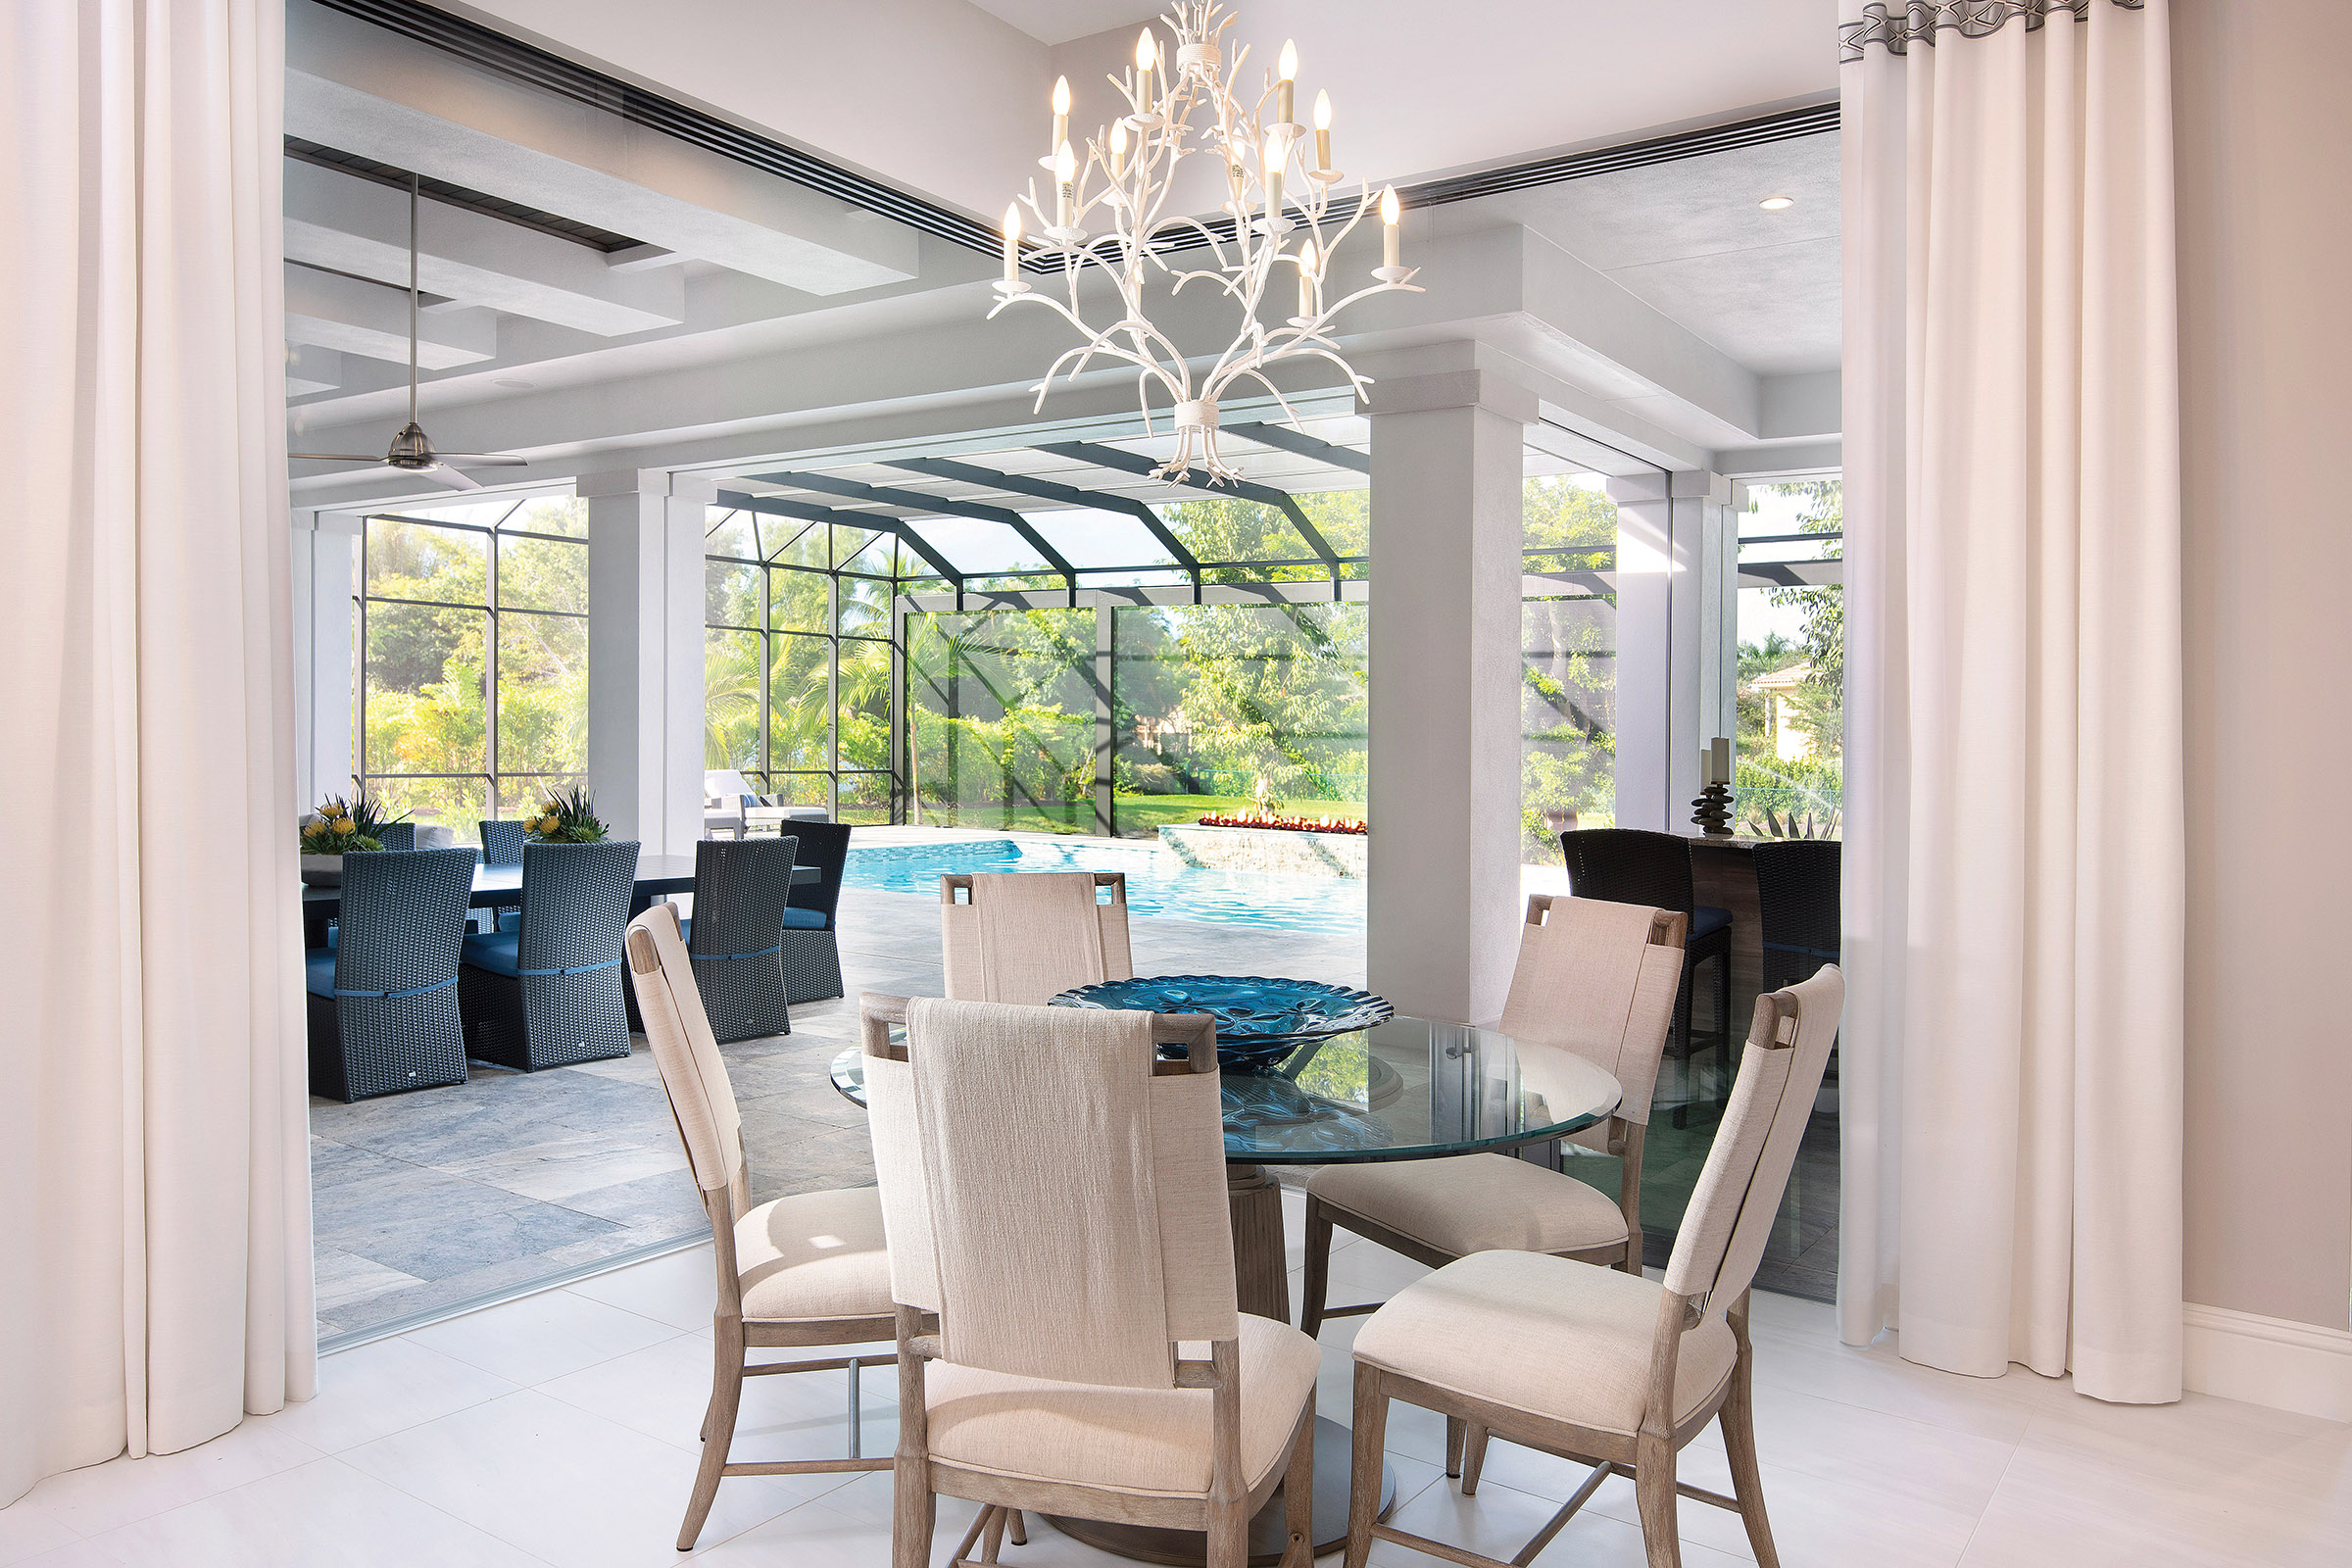 Just off the kitchen is a comfortable breakfast nook that opens into the large lanai via the corner glass doors that fully pocket away for a true indoor/outdoor dining experience.